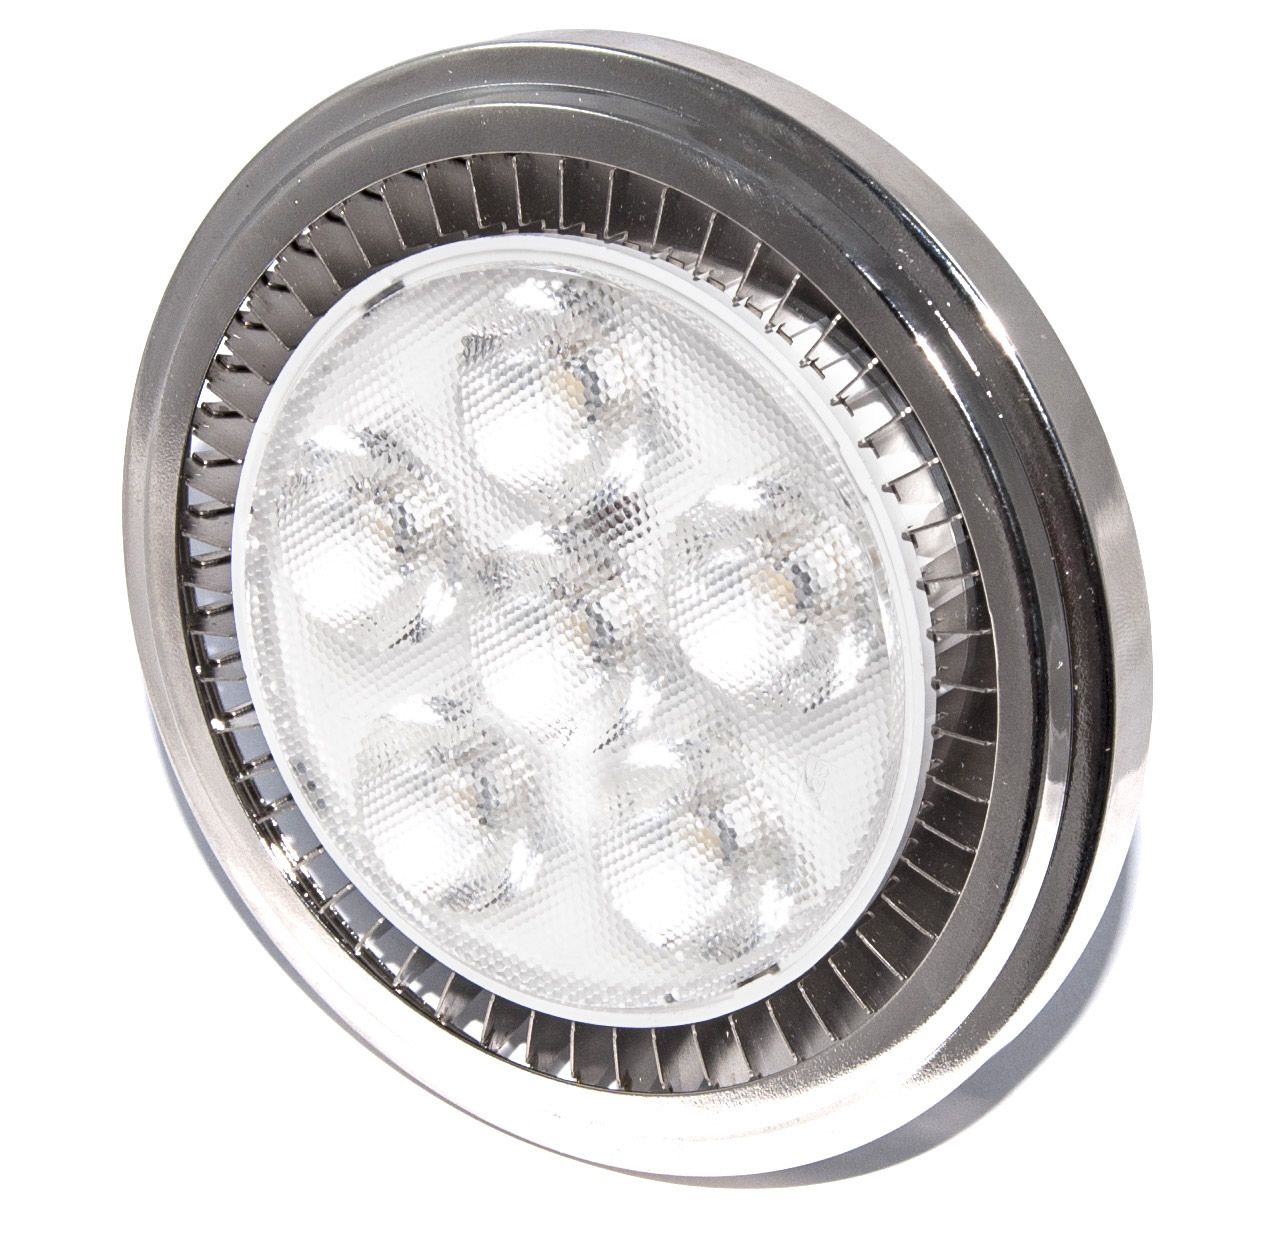 Led Lampen Ar111 Power Led Dimbaar G53 6x2w Power Led Spot 12 Watt